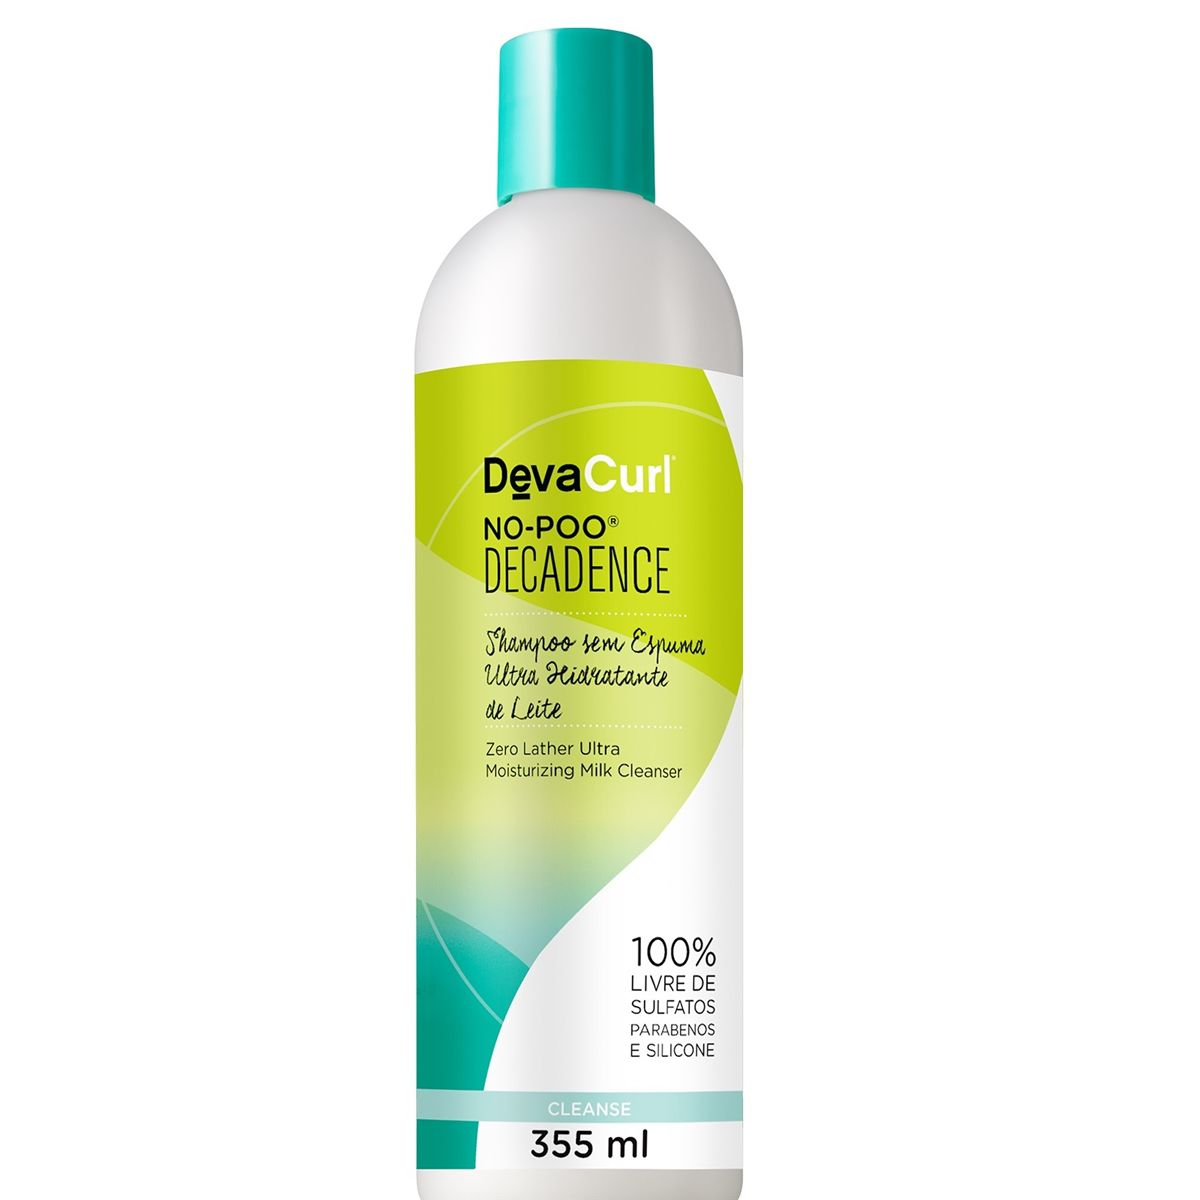 Deva Curl No-Poo Decadence 355 ml